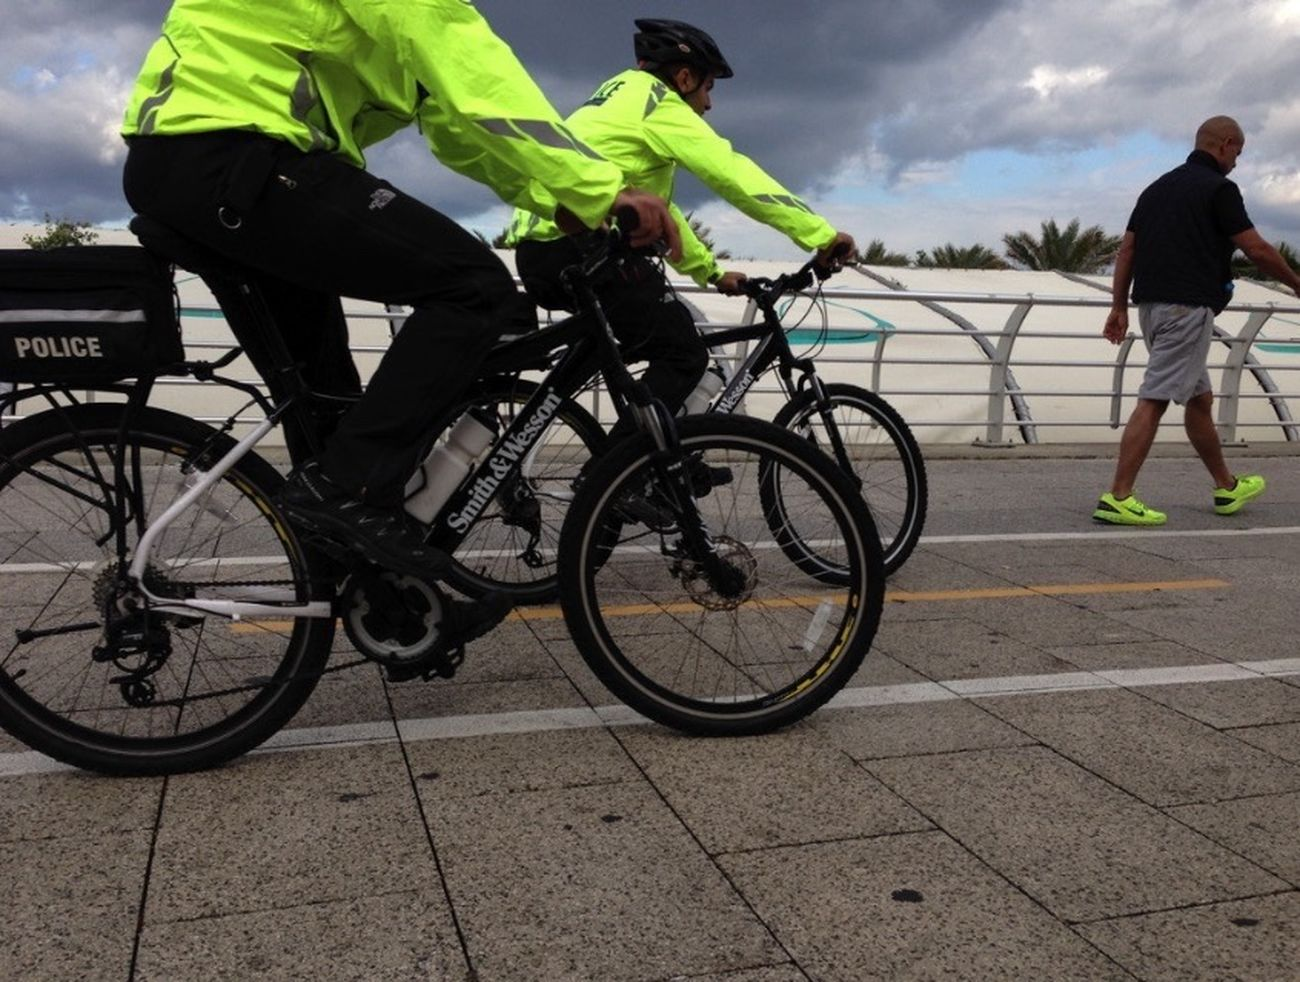 It's a bright day Police Sreetphotography Bicycle Fluo  People People And Places. People And Places